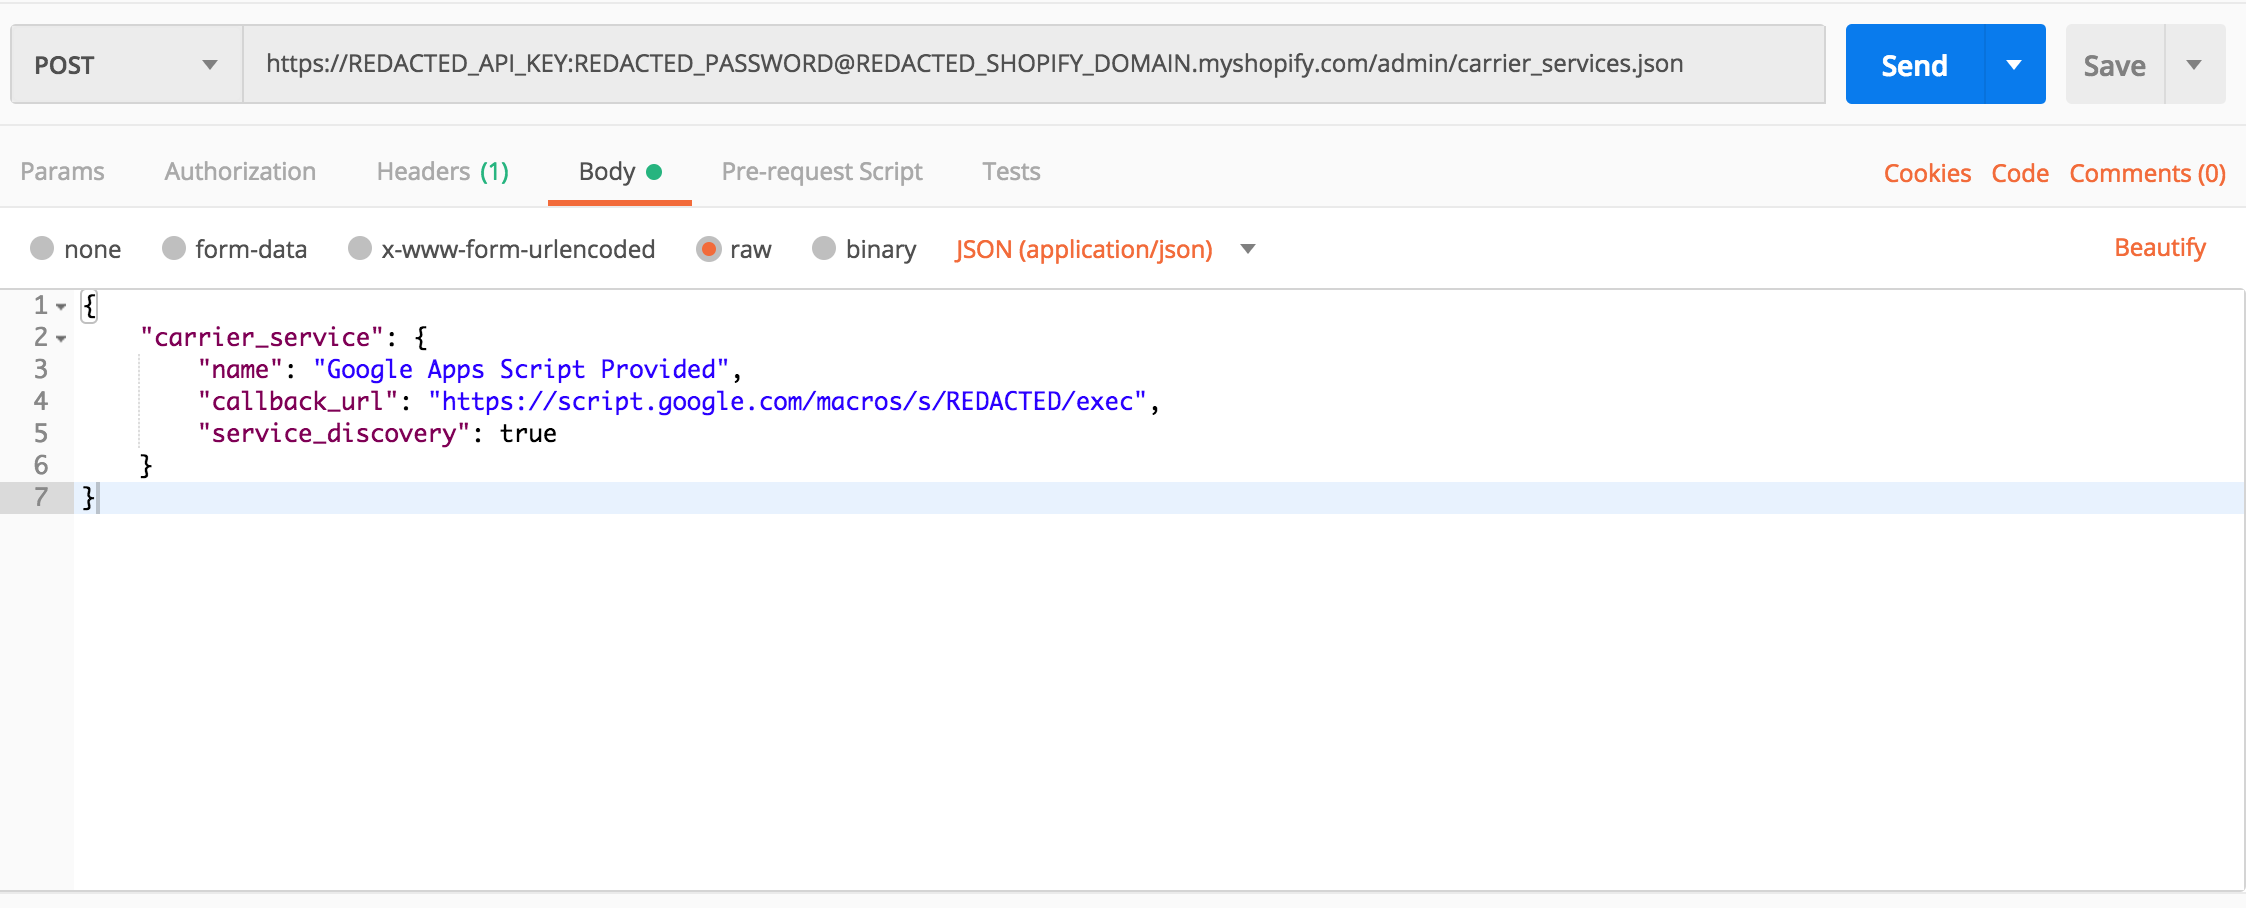 Generating Shopify shipping rates from Google Apps Script